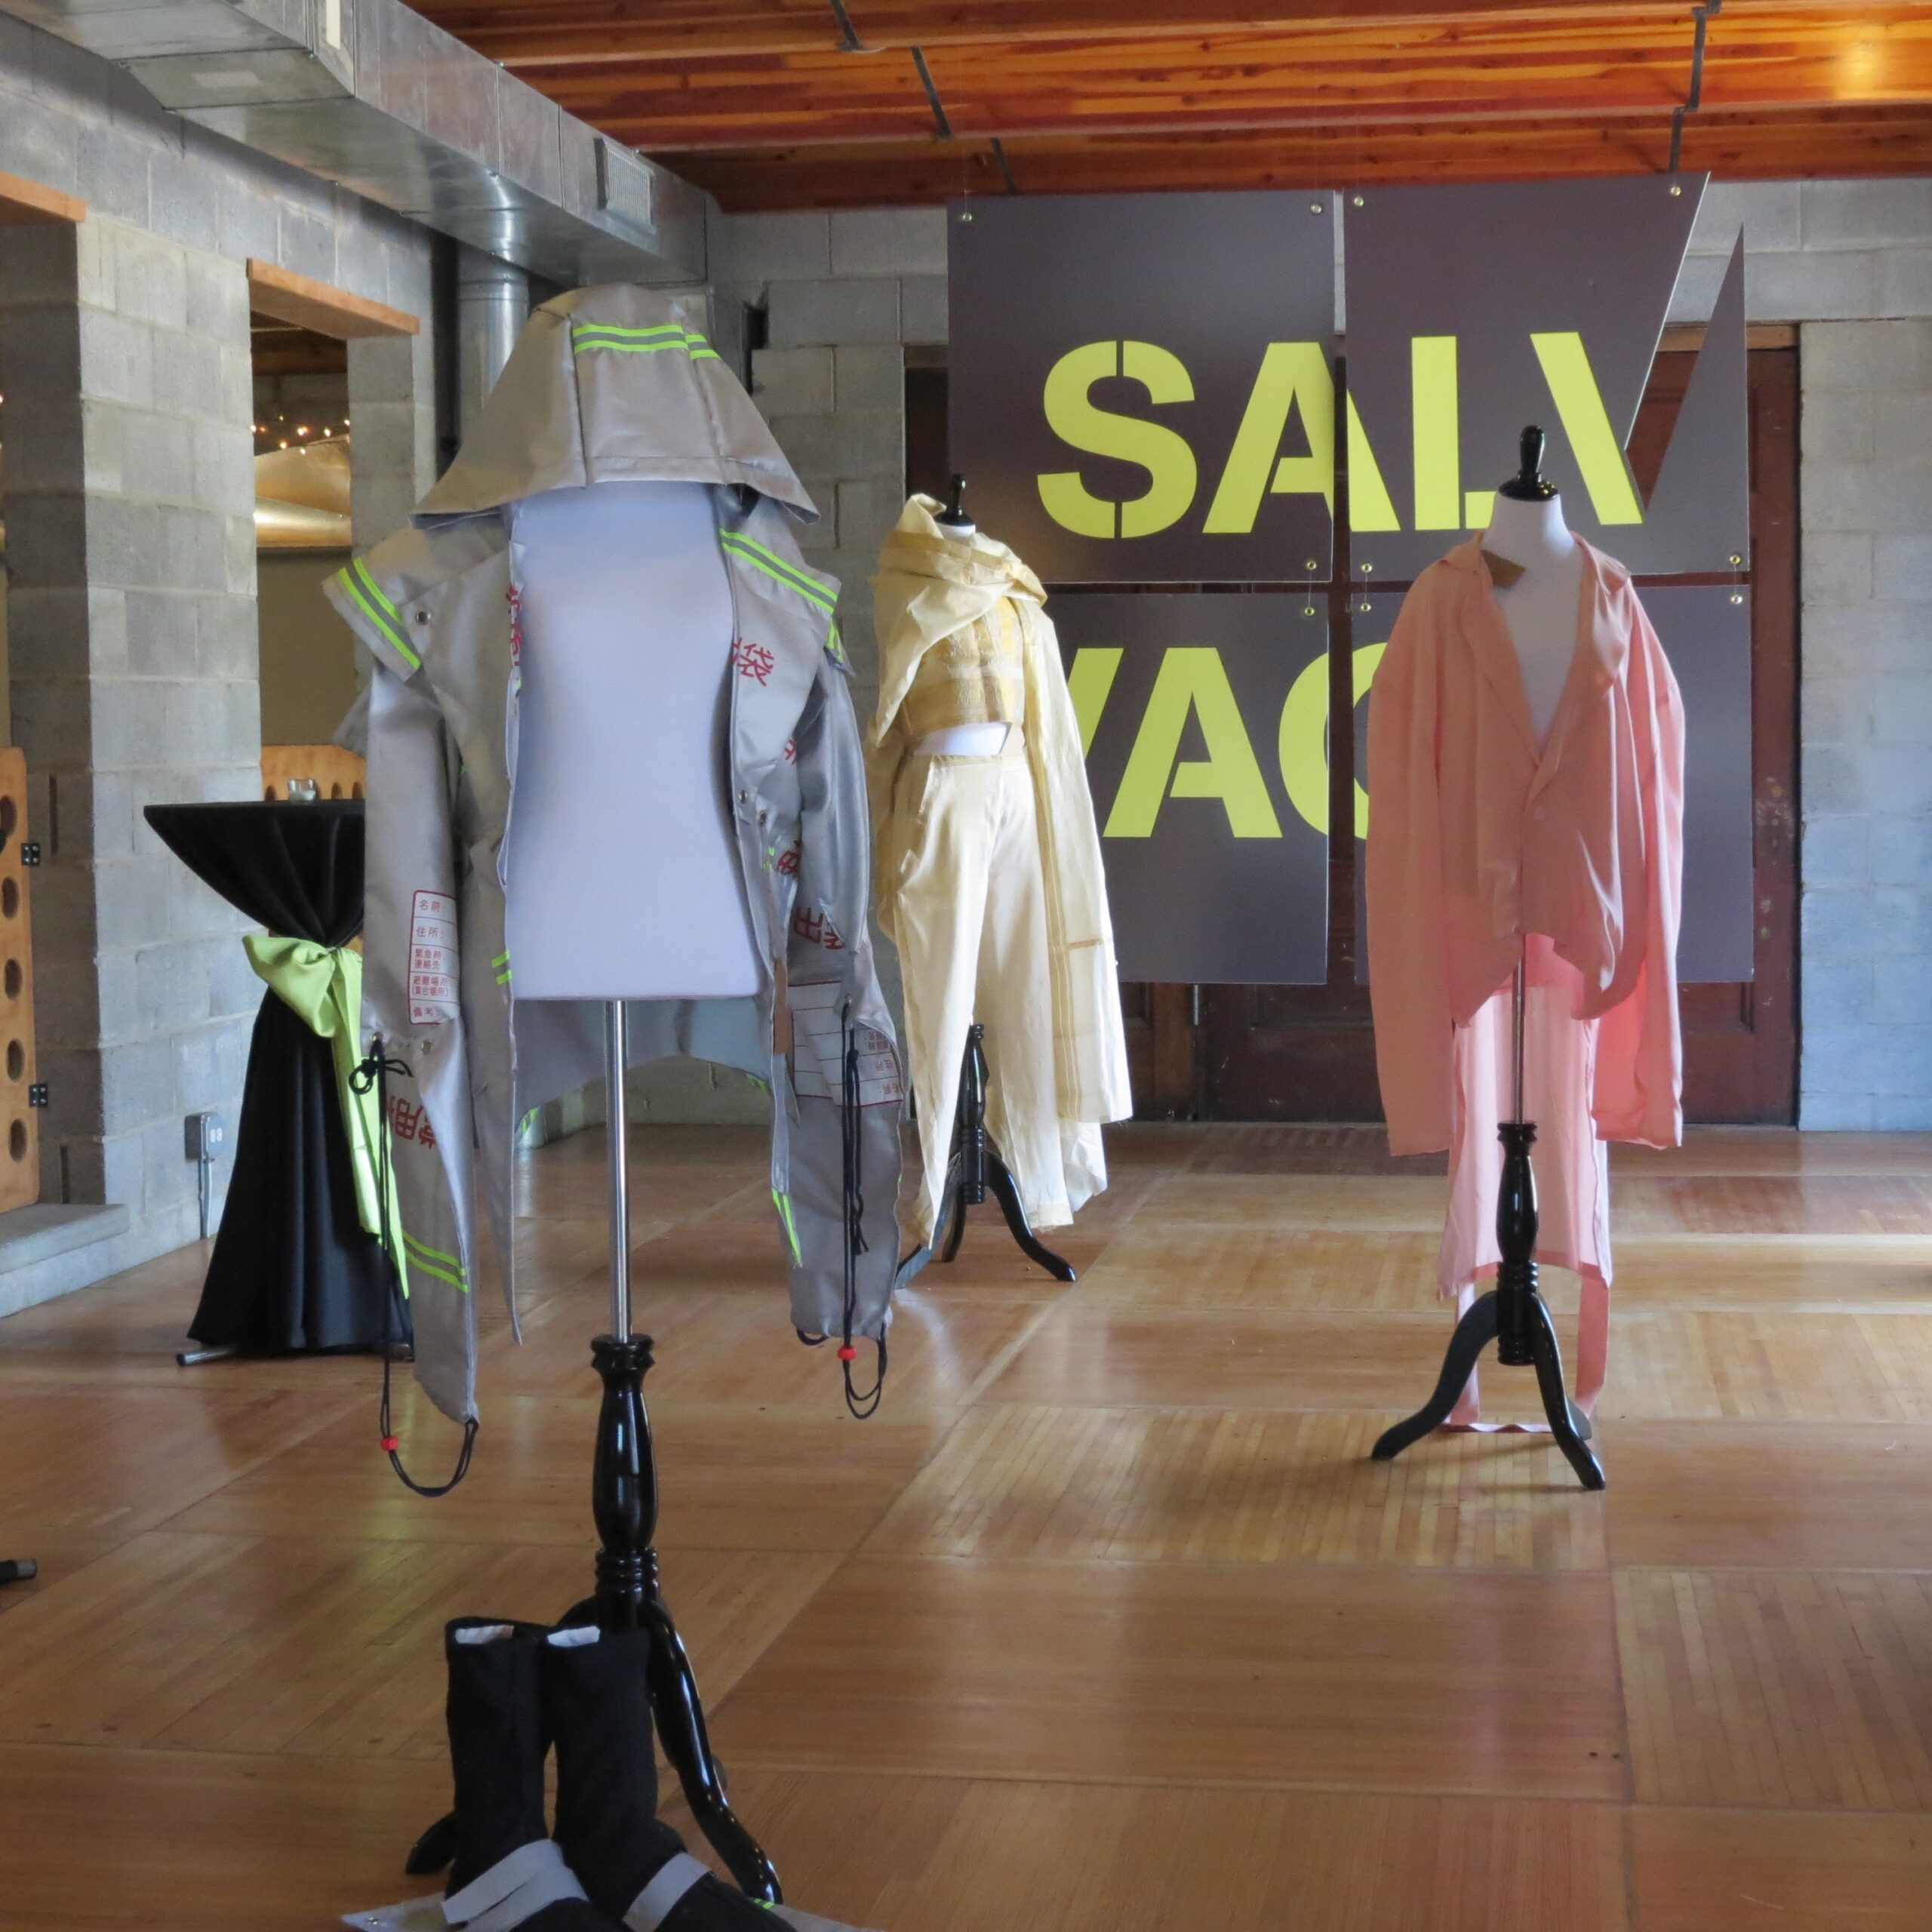 three dressed up mannequins spaced within a room with